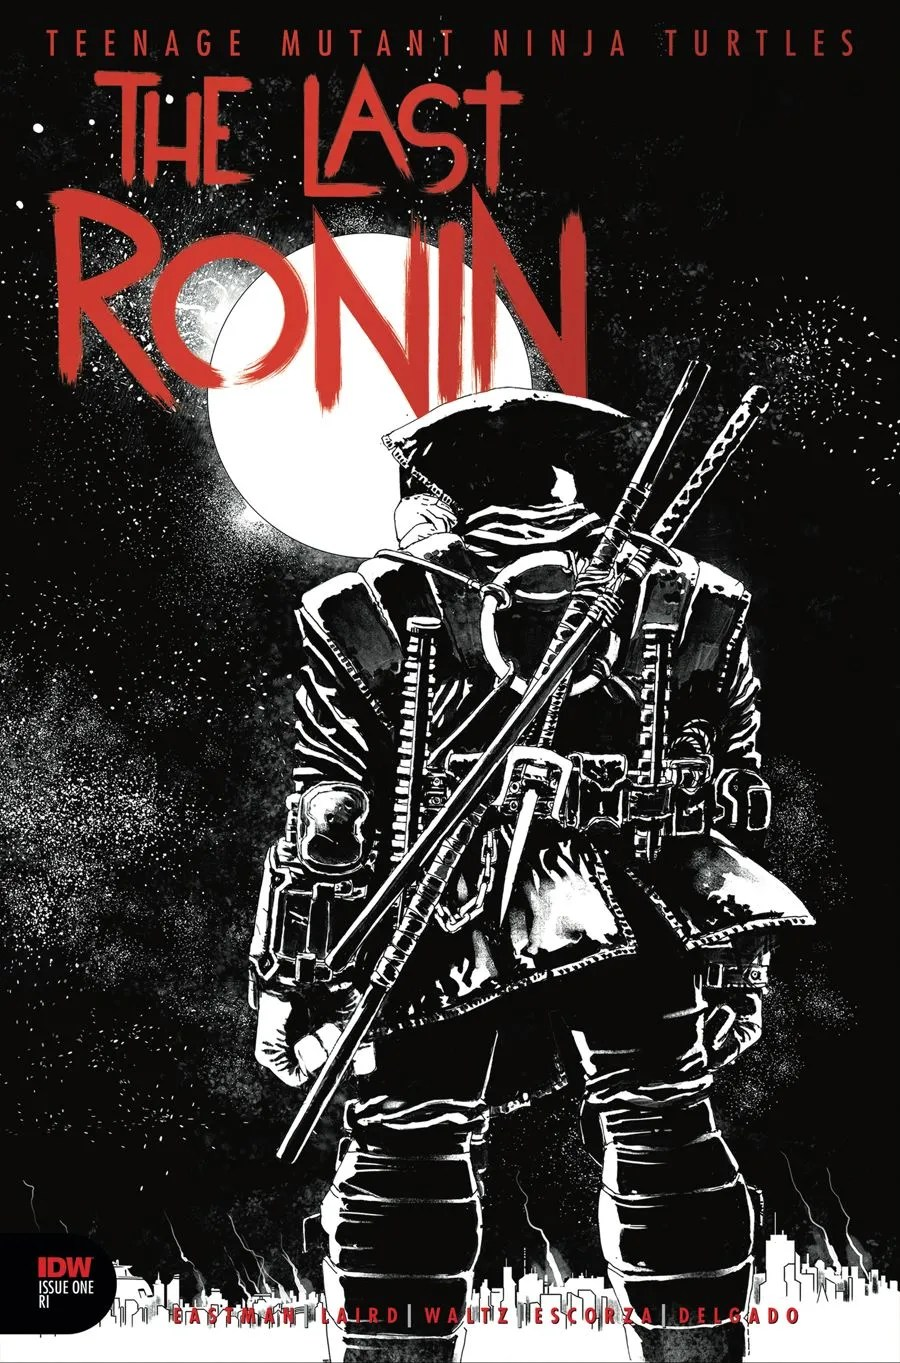 35c2b383-b7dc-471b-88c5-8328cbd07bea THE LAST RONIN #1 pre-orders exceed expectations of humans and turtles alike